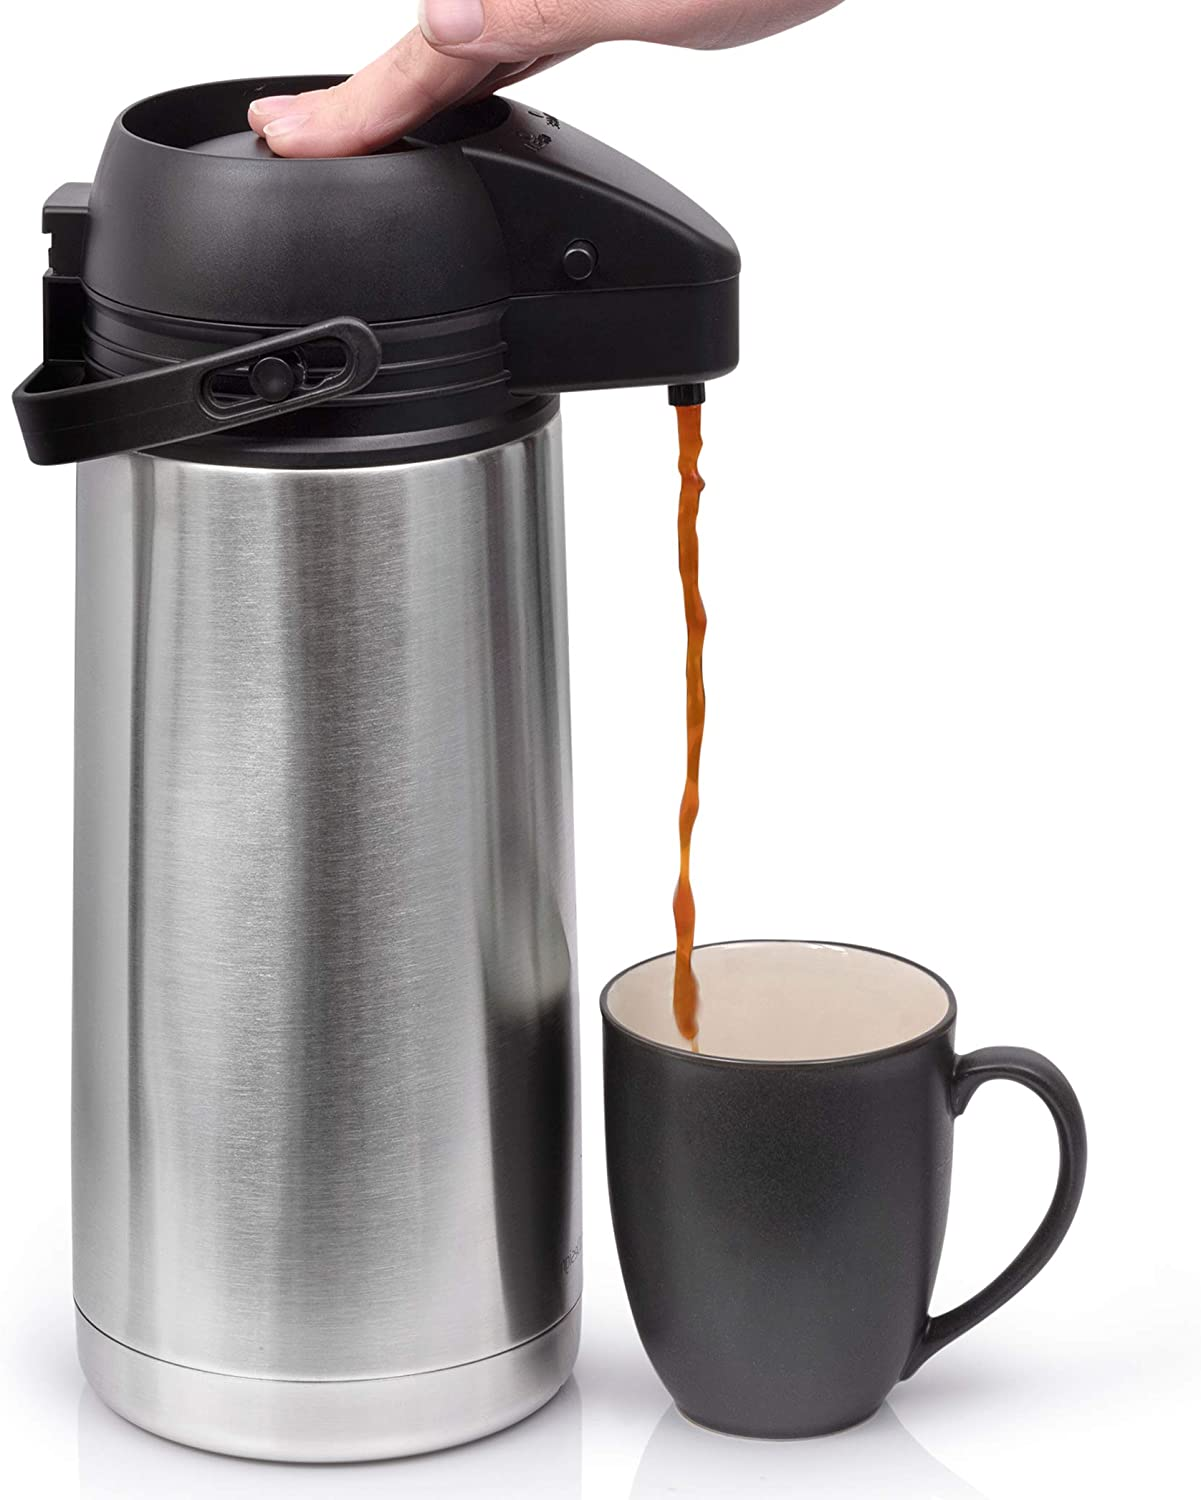 64 Oz 1.9 Liter Airpot Coffee Button Dispenser San Francisco Mall Easy Excellent with Push